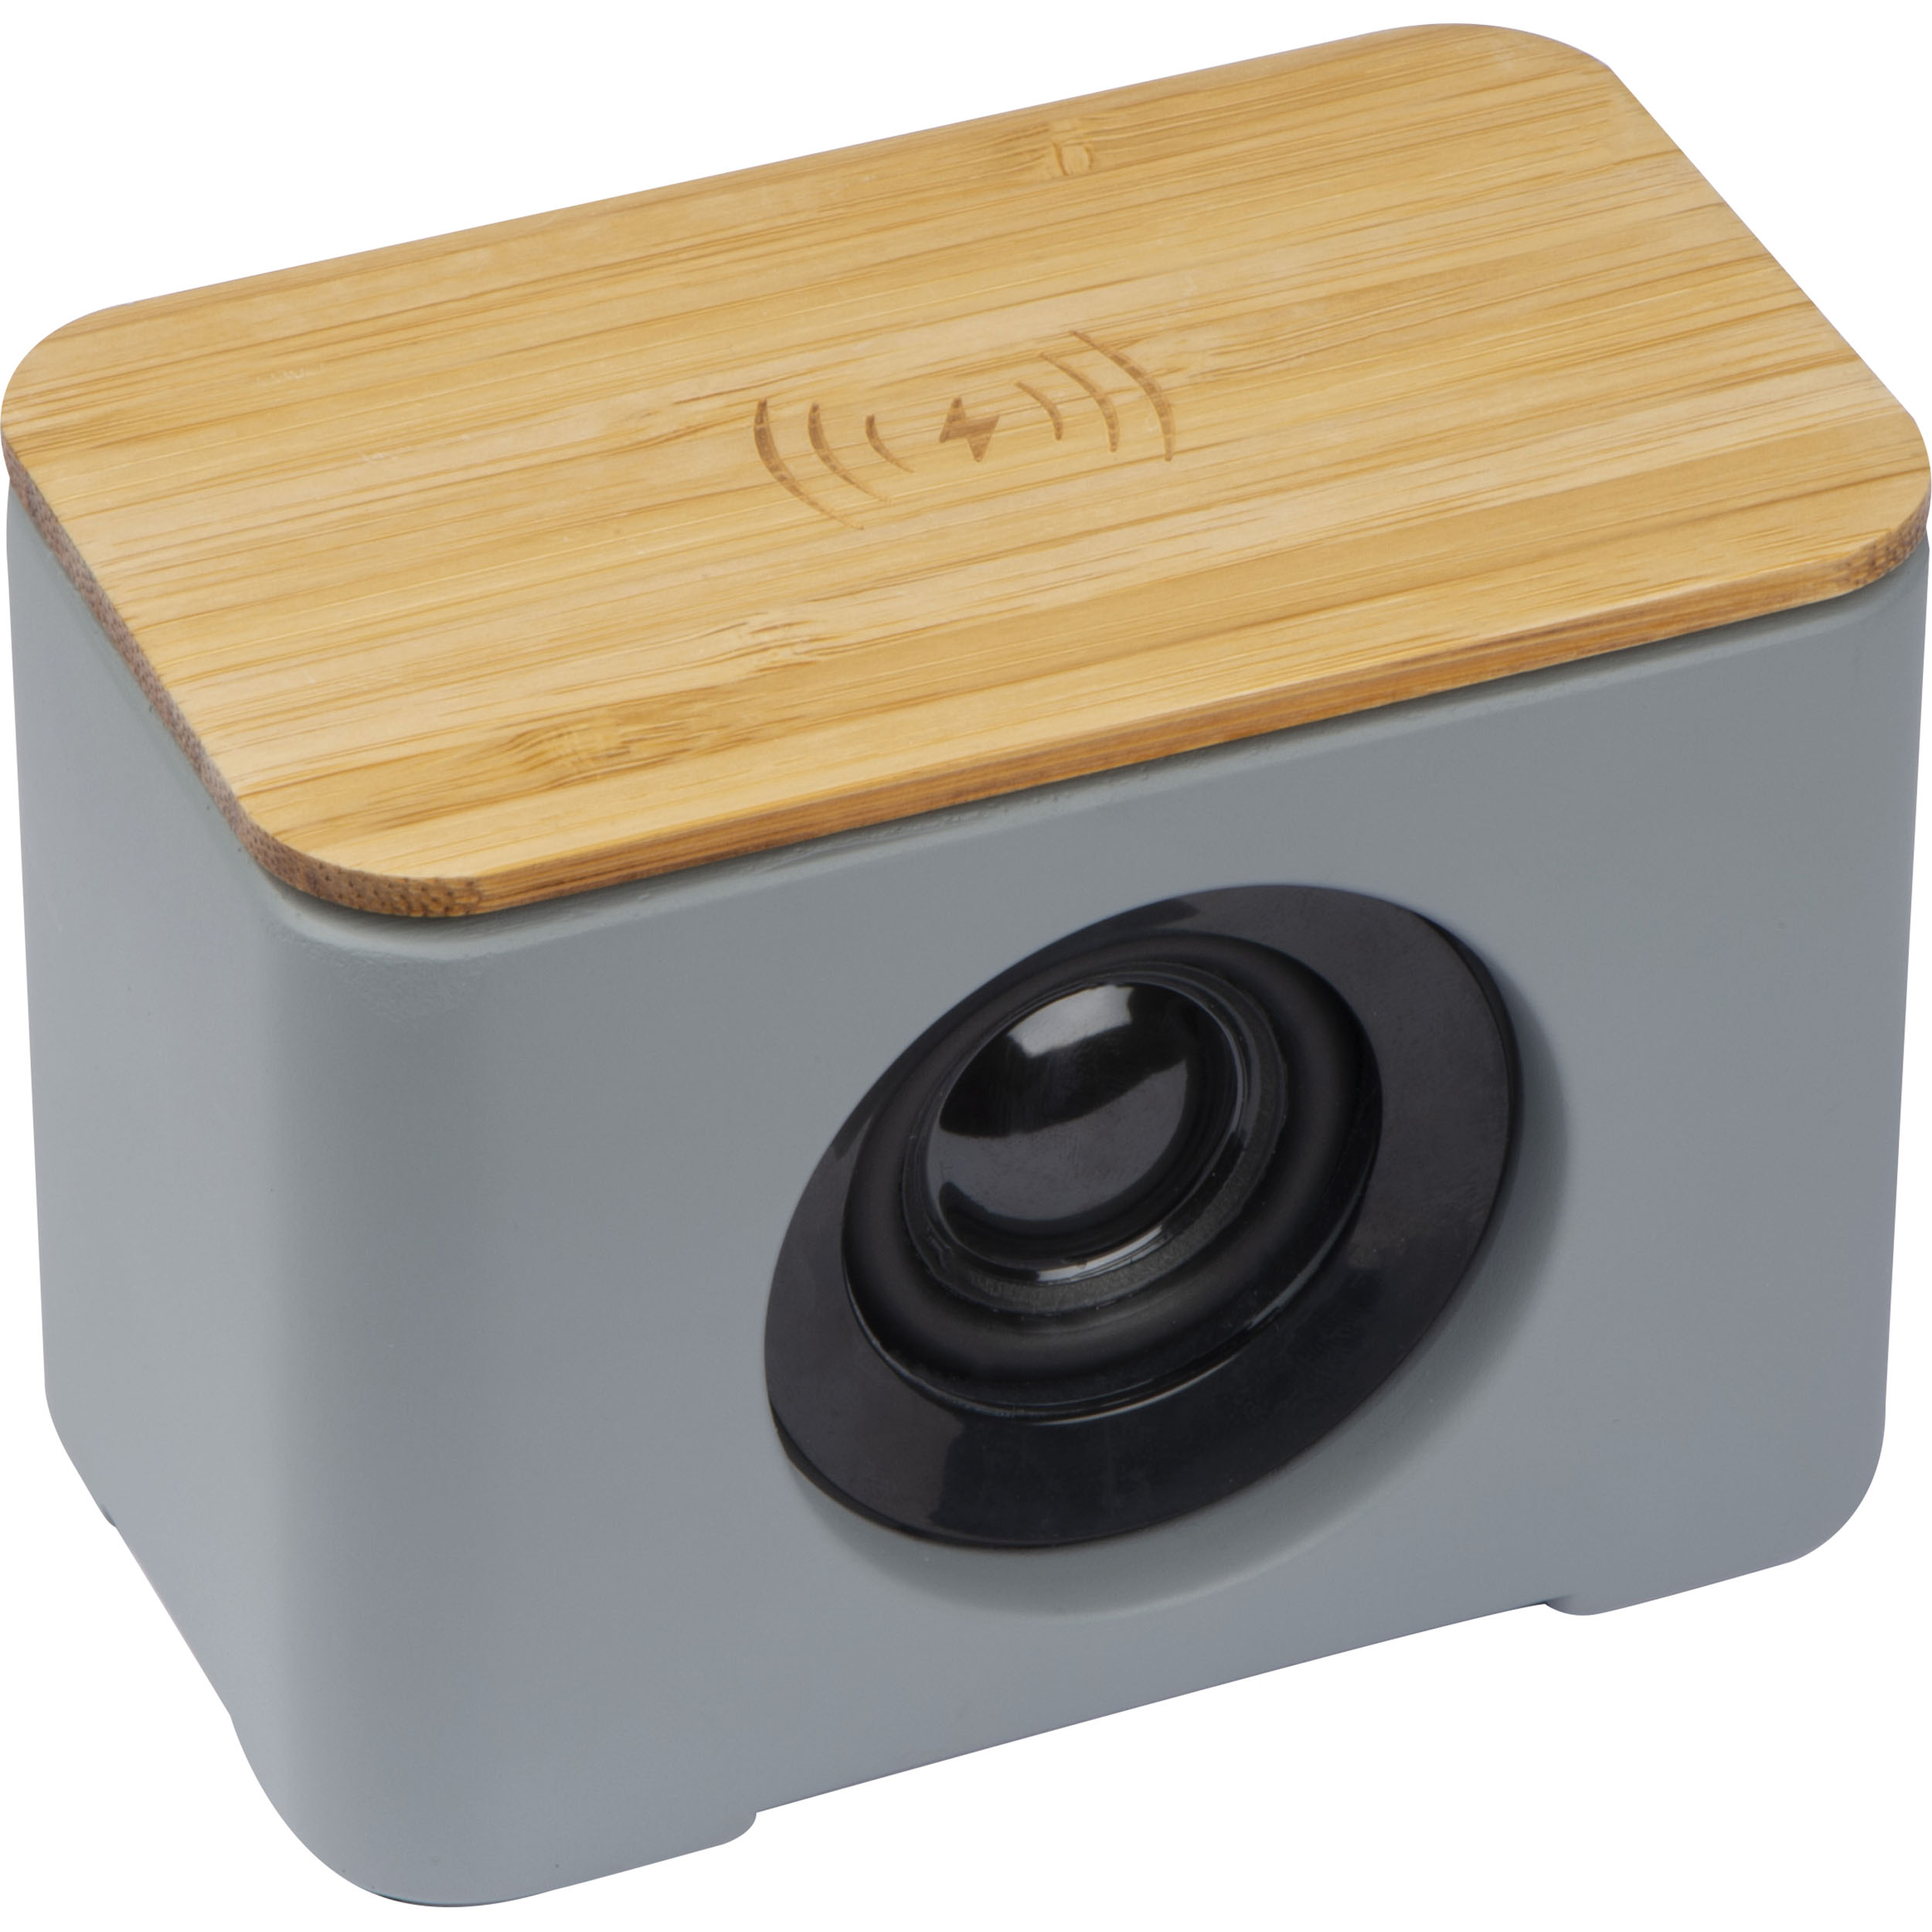 Bluetooth Speaker with inductive charger